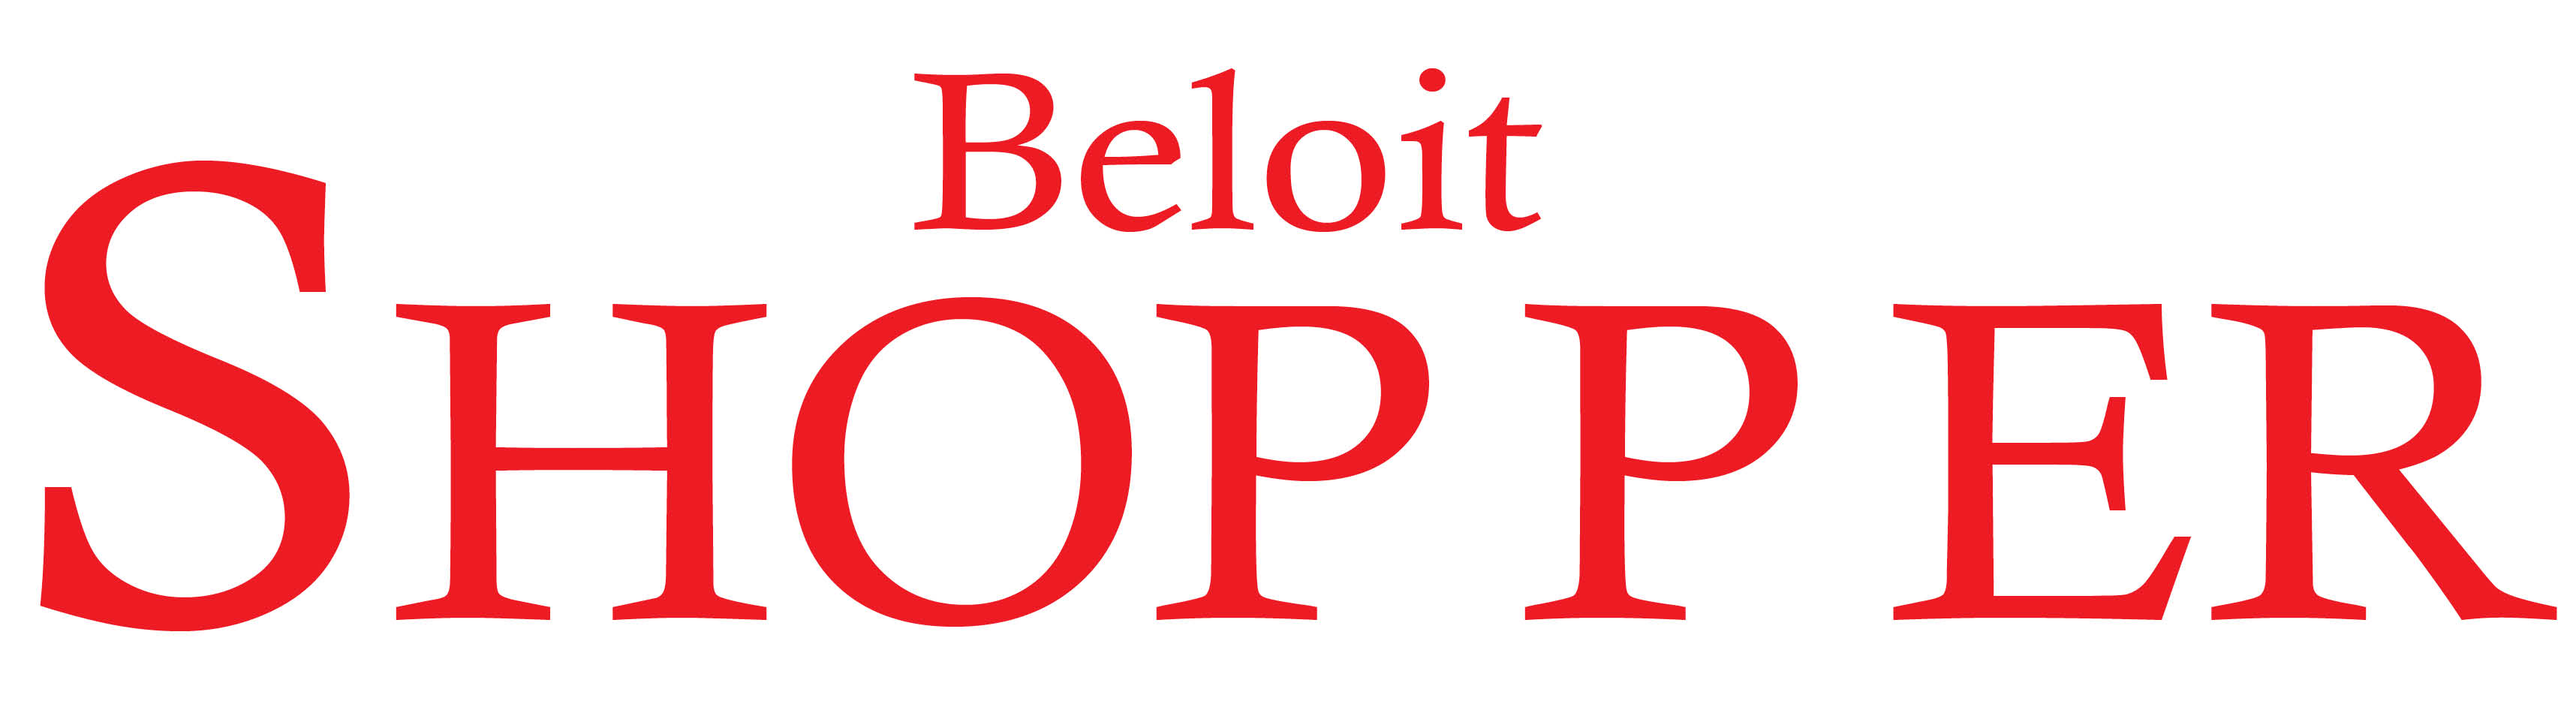 6/8/17 Beloit Shopper